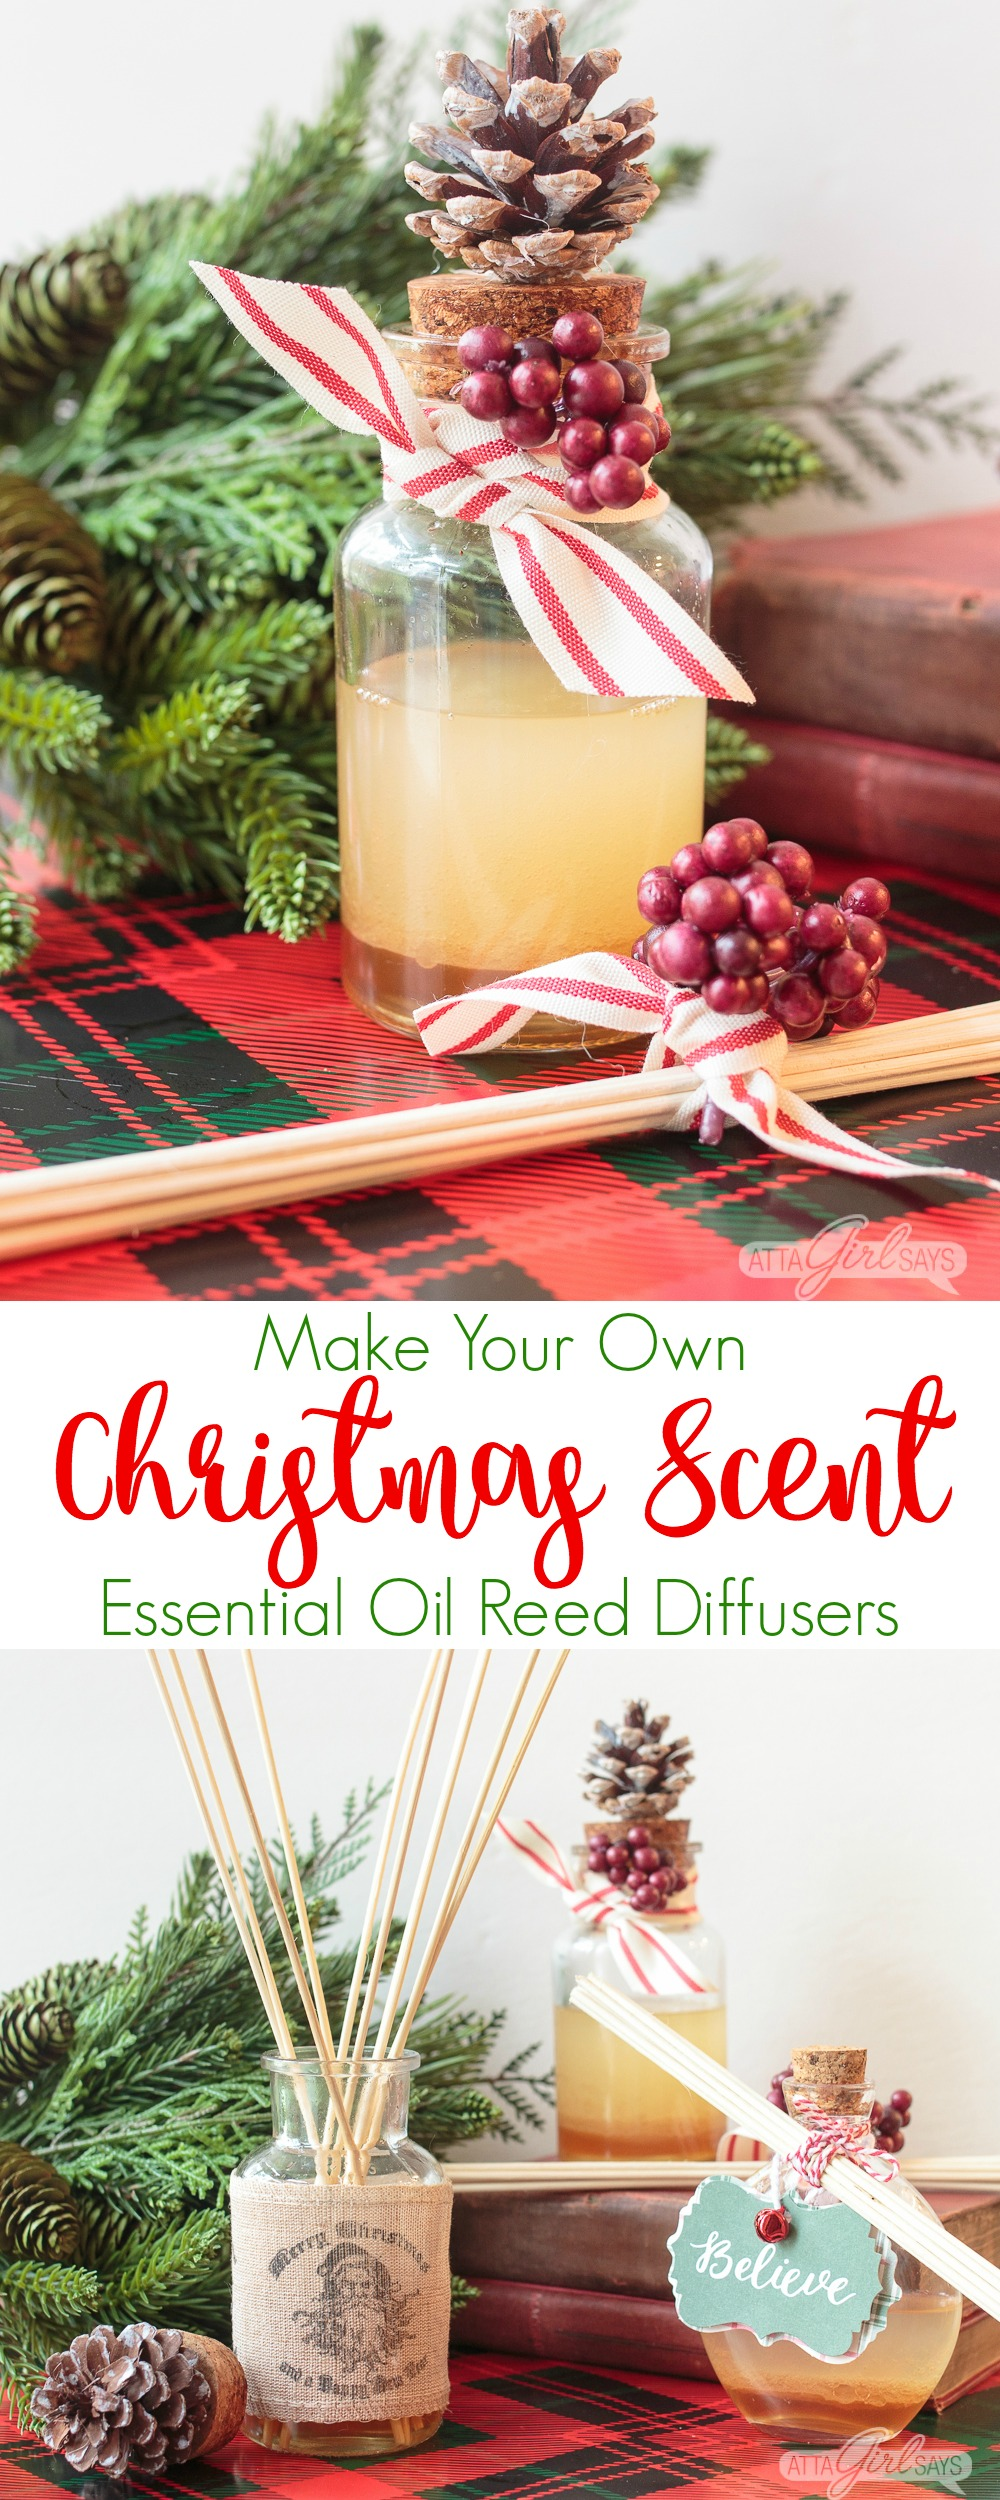 Learn how to make your own essential oil reed diffusers, featuring a delicious Christmas scent of clove, cedarwood, sweet orange and vanilla, in beautiful glass bottles that will enhance your holiday decor. #HandmadeHolidays